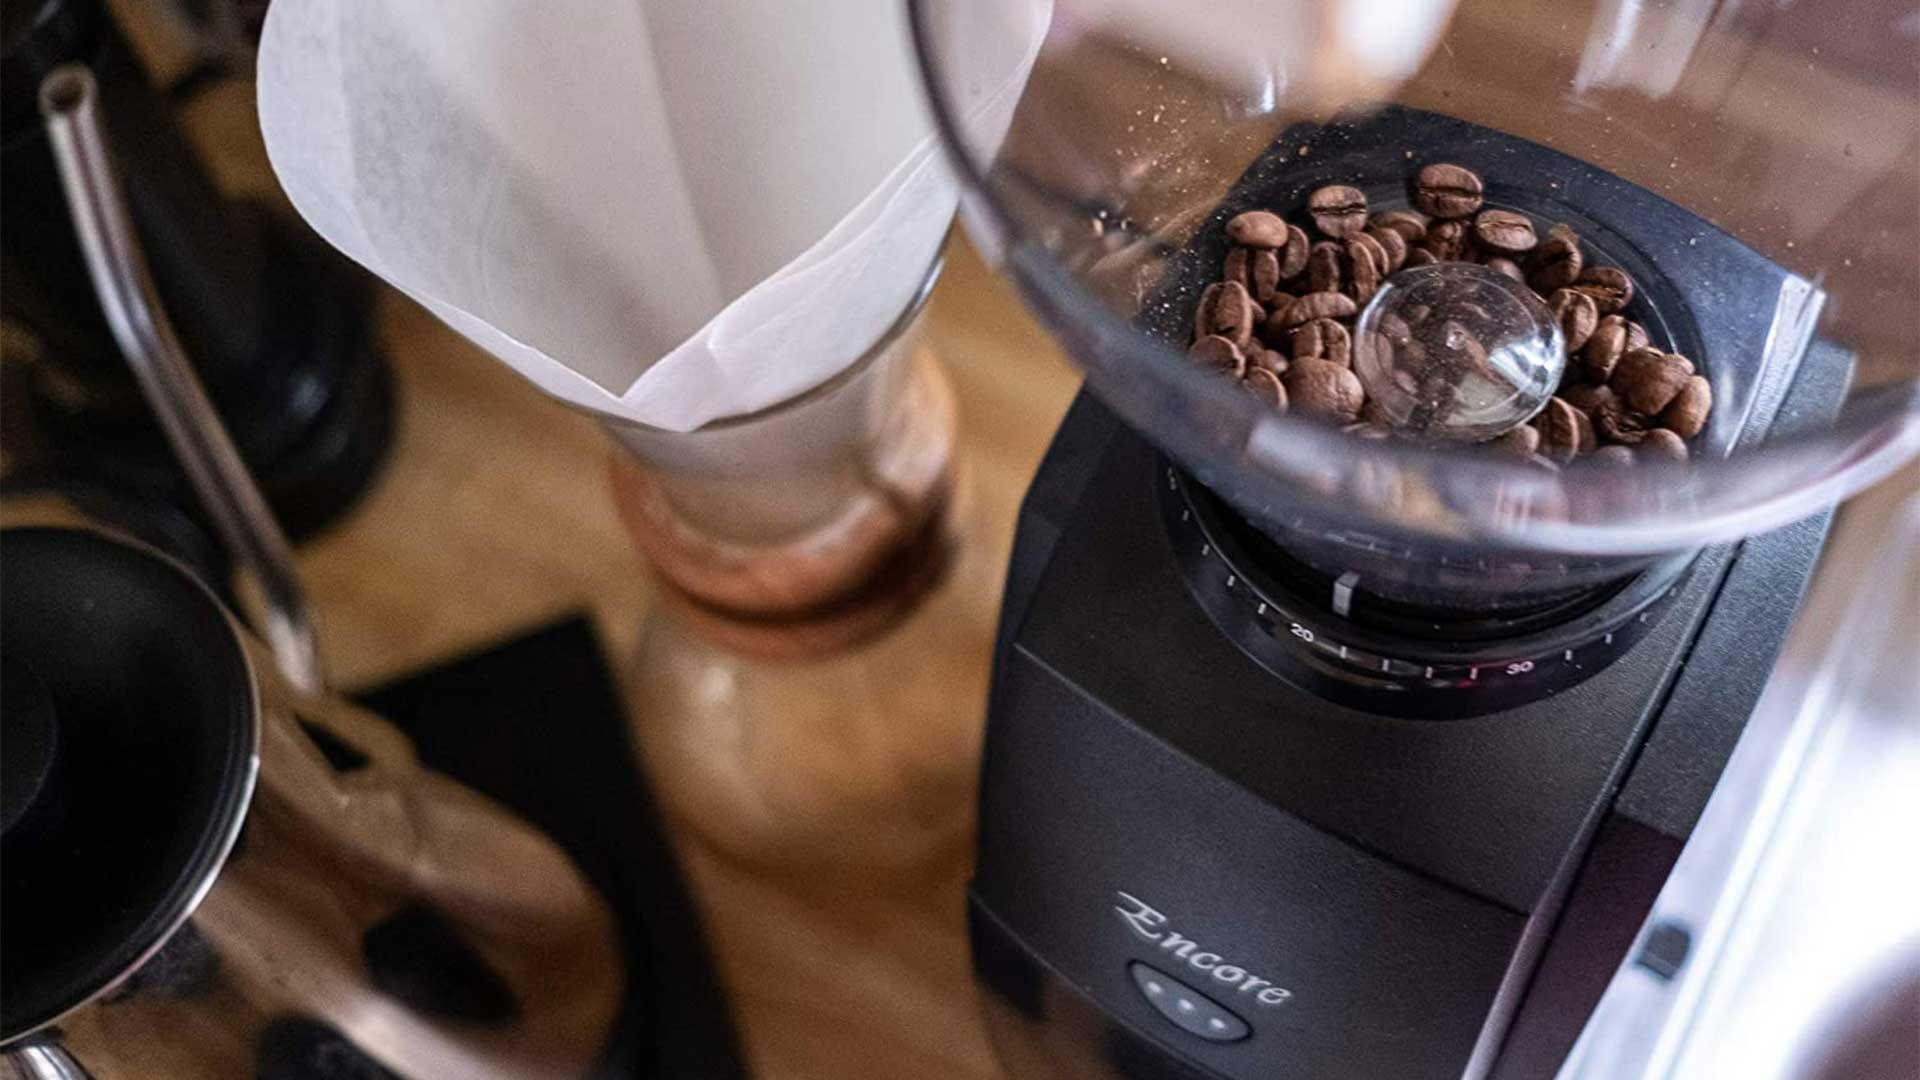 A coffee grinder with beans in the hopper, next to a pour-over coffee maker.